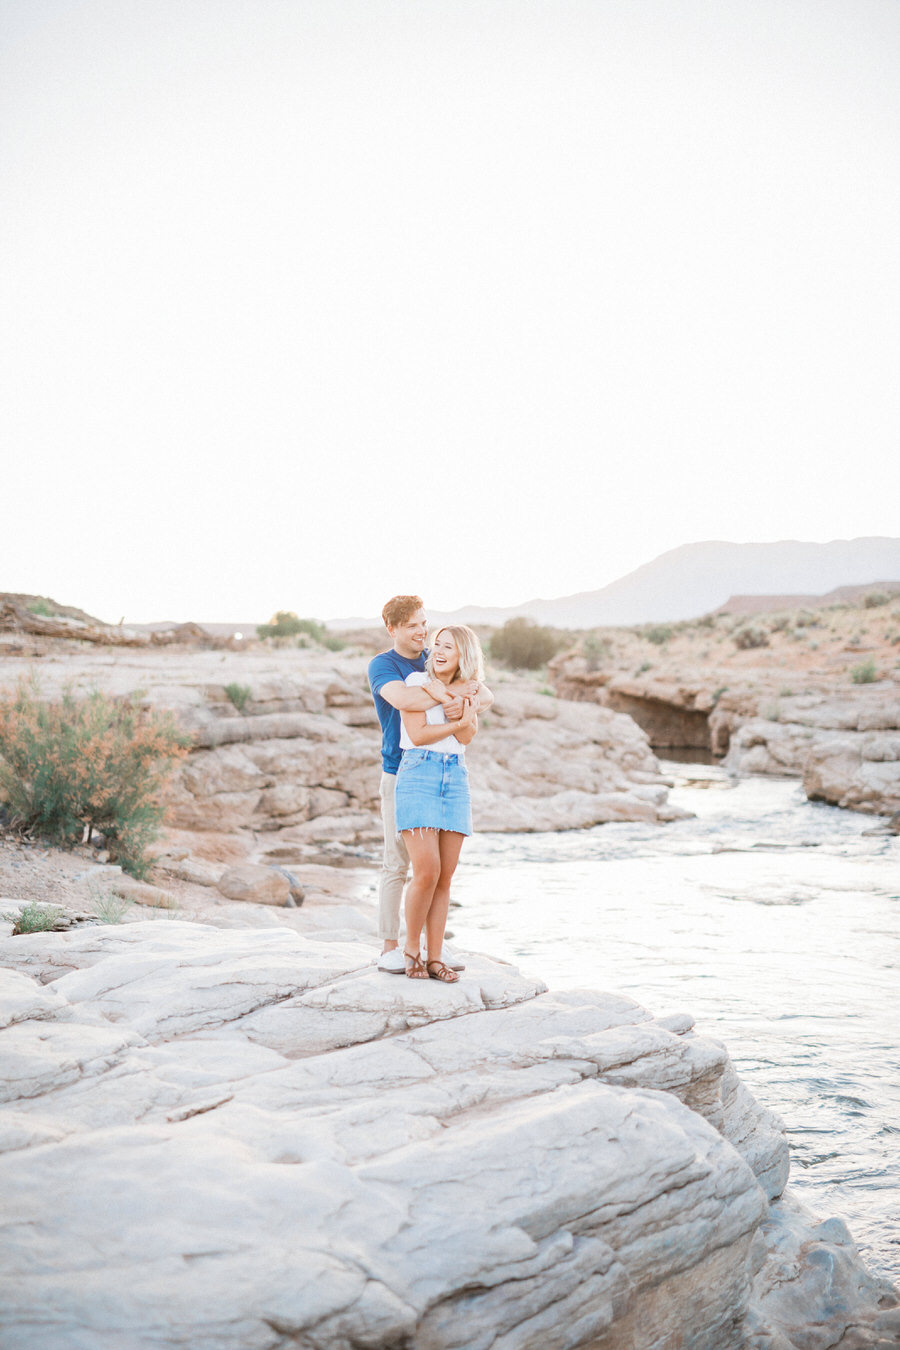 zion river engagement, zion engagement, zion wedding, gideon photography, gideon photo, engagement, elopement, river, gideonphoto.com, utah wedding photographer, destination, destination wedding photographer, family portrait photographer, st george, zion, st george photographer, saint george photographer, southern utah photographer, southern utah wedding photographer, st george wedding photographer, photographers, snow canyon, red rock, overlook, cliffs, amazing, fun